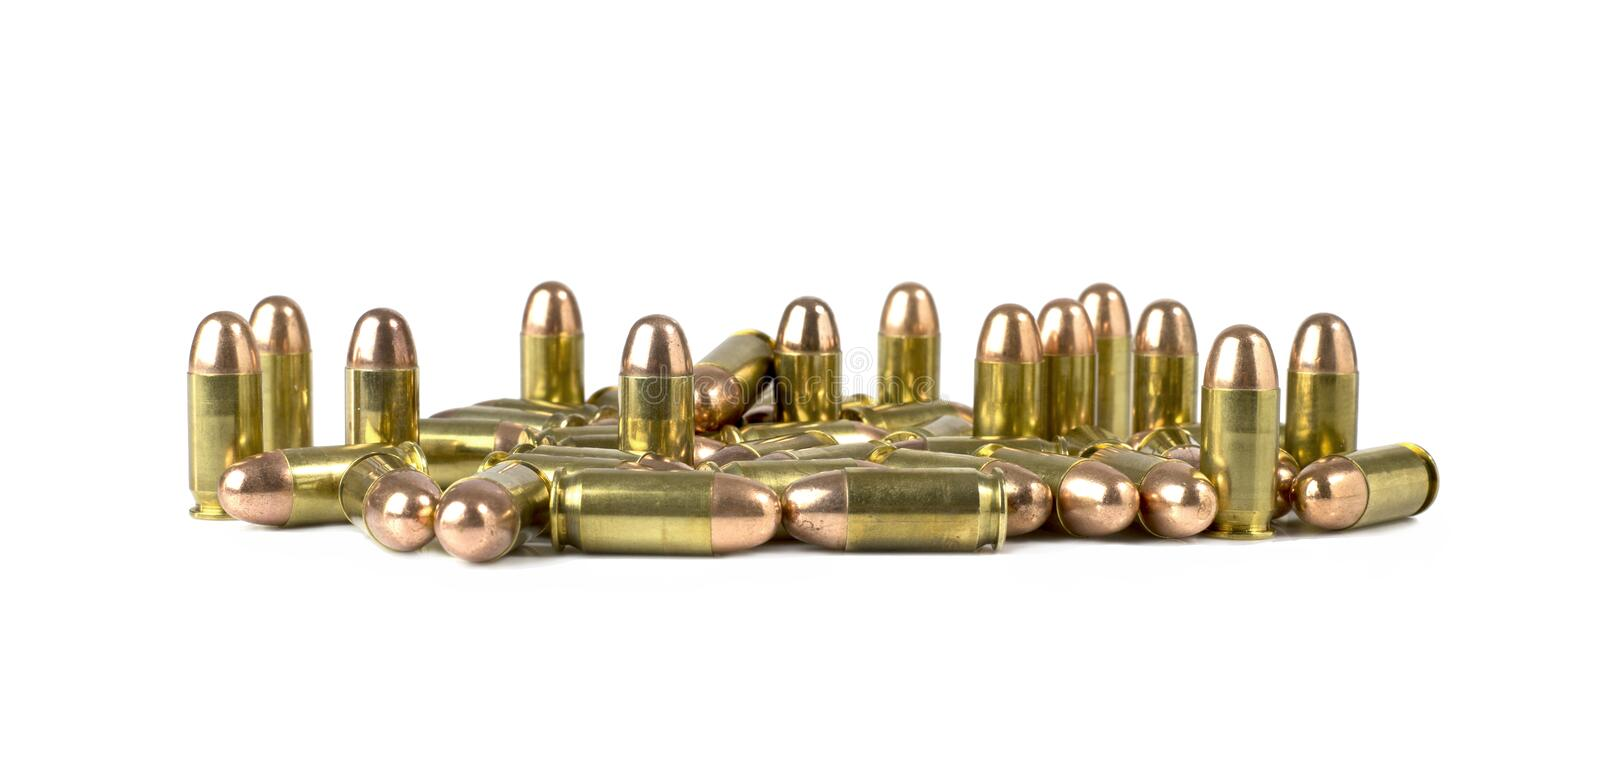 Bullet .45 auto on white background stock images